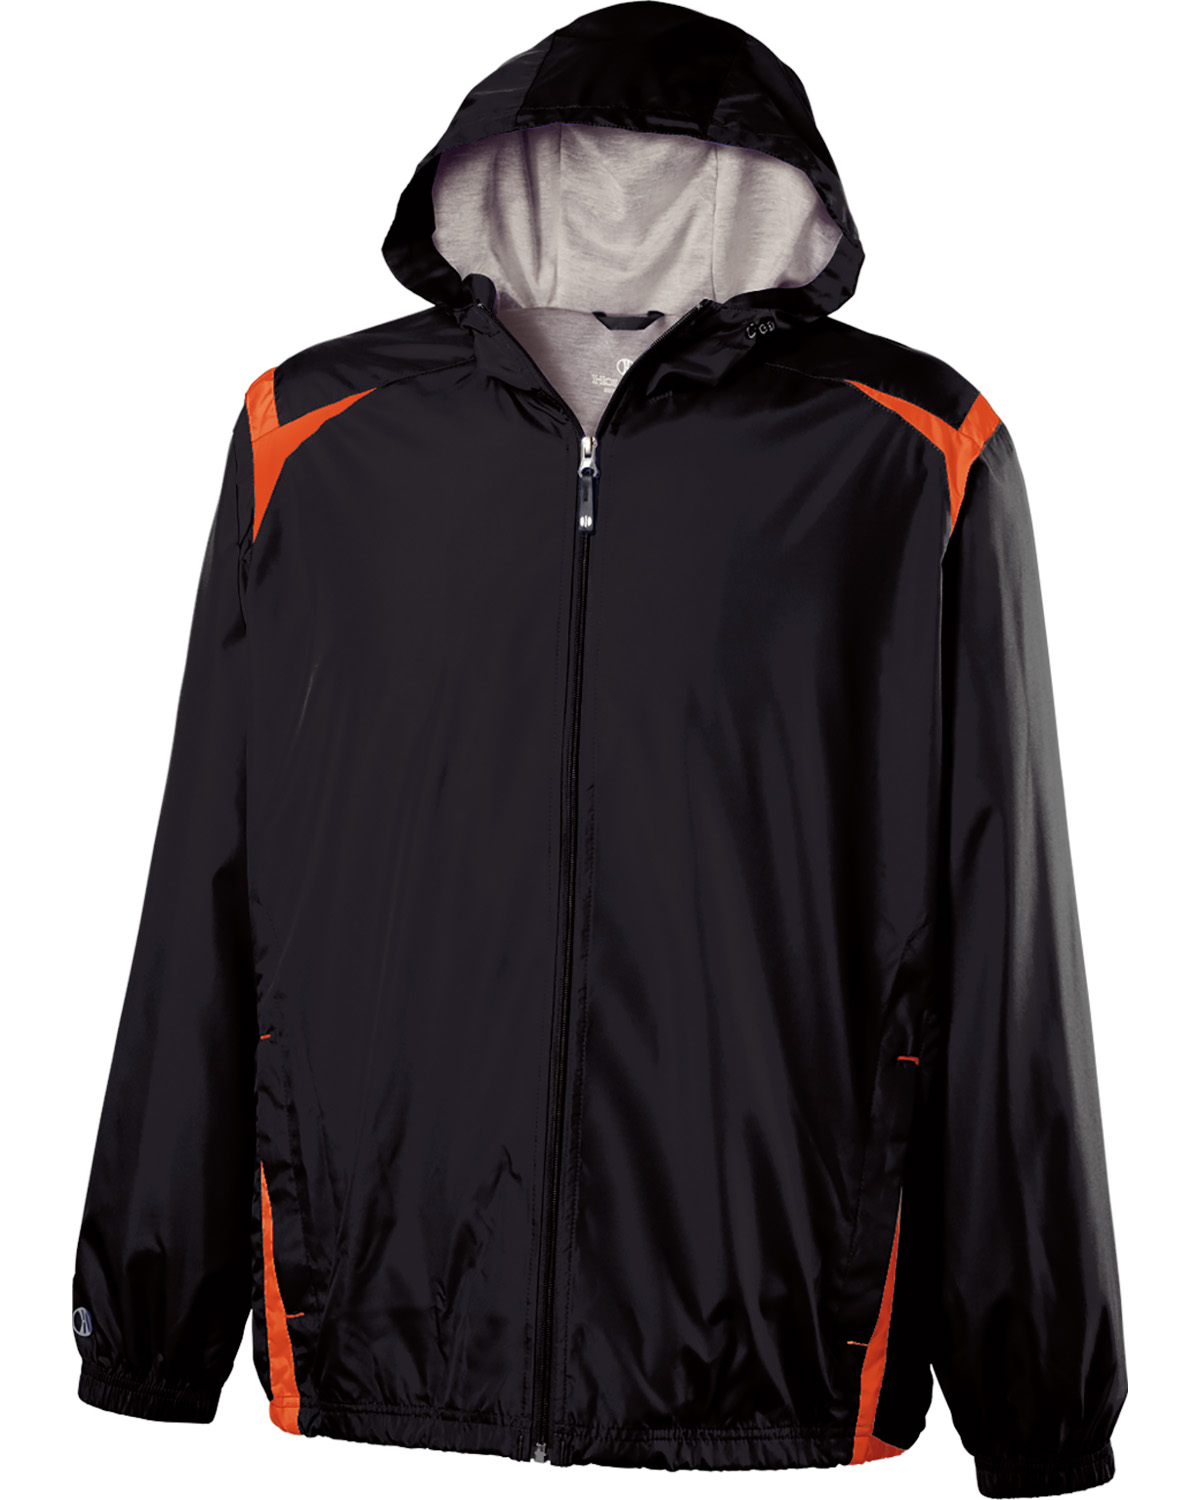 Holloway 229076 - Adult Polyester Full Zip Hooded Collision Jacket